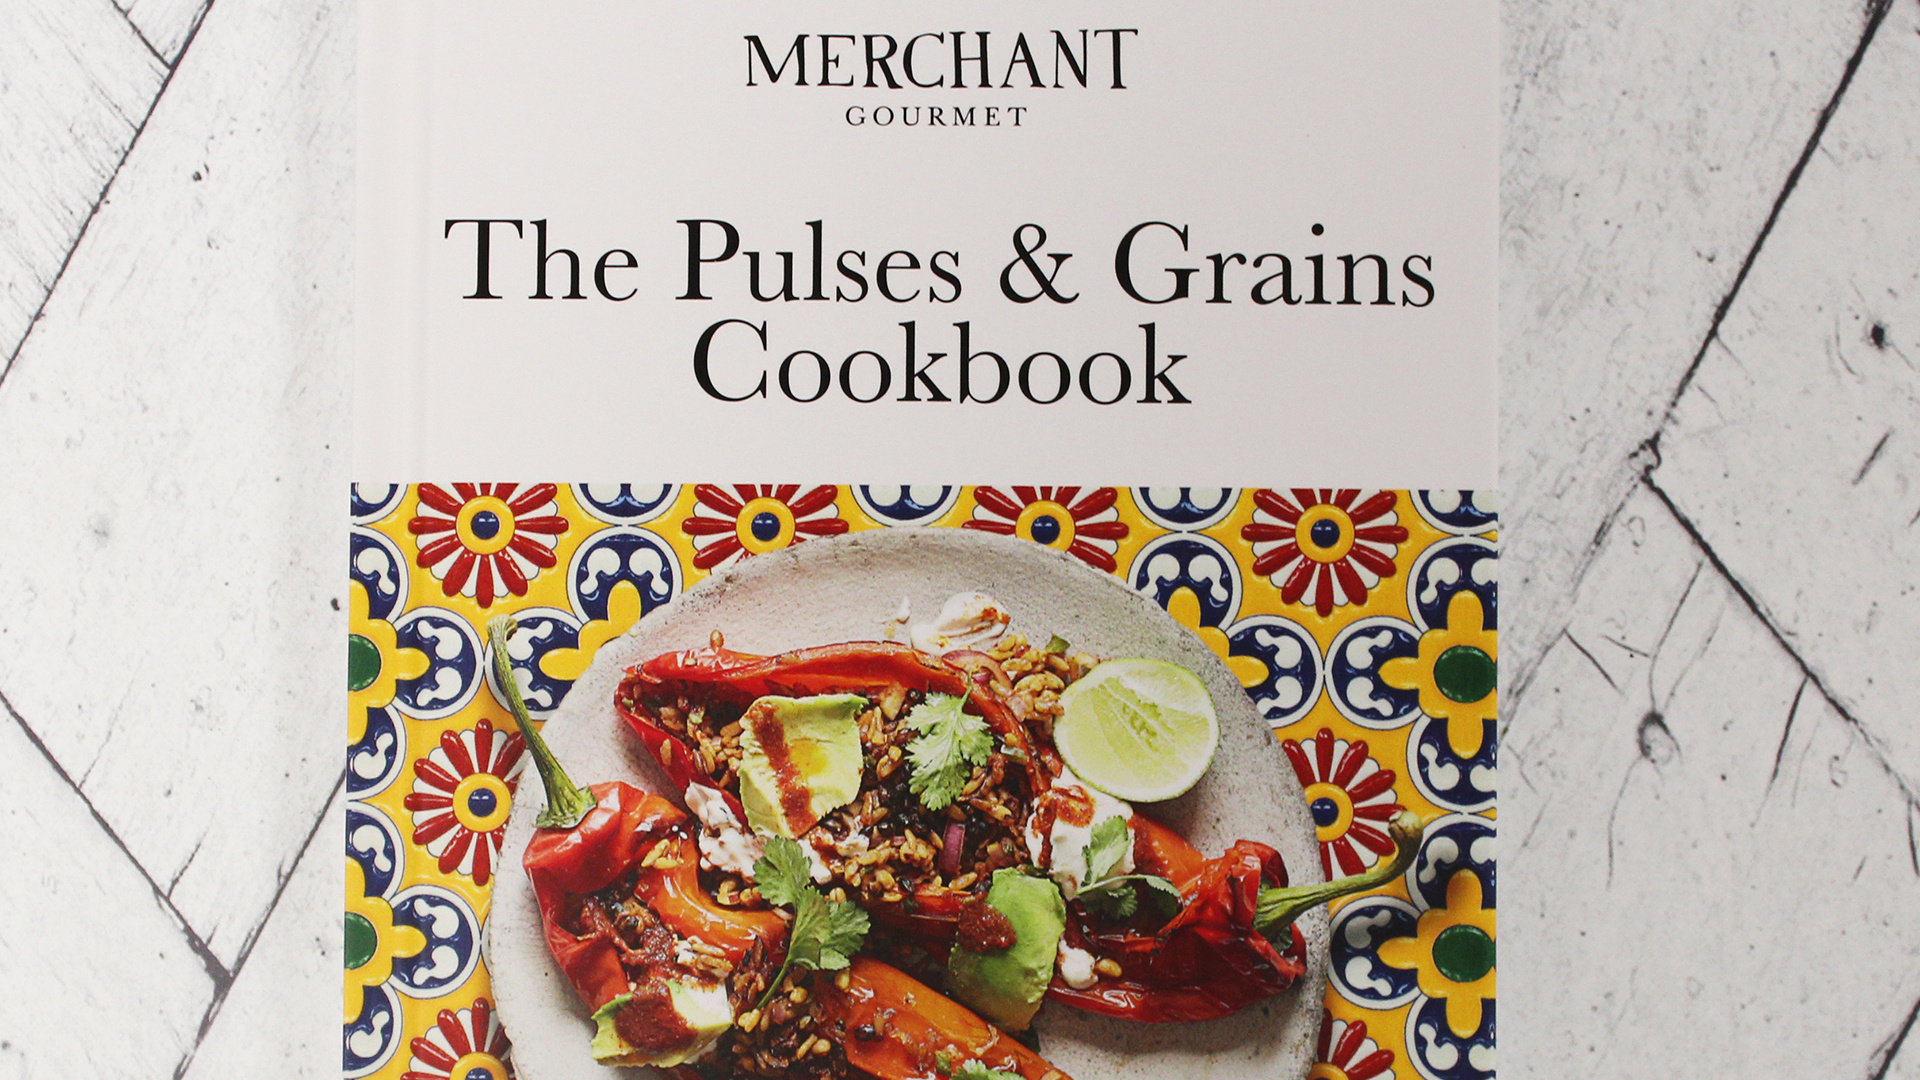 Win 50 copies of 'The Pulses & Grains Cookbook' by Merchant Gourmet